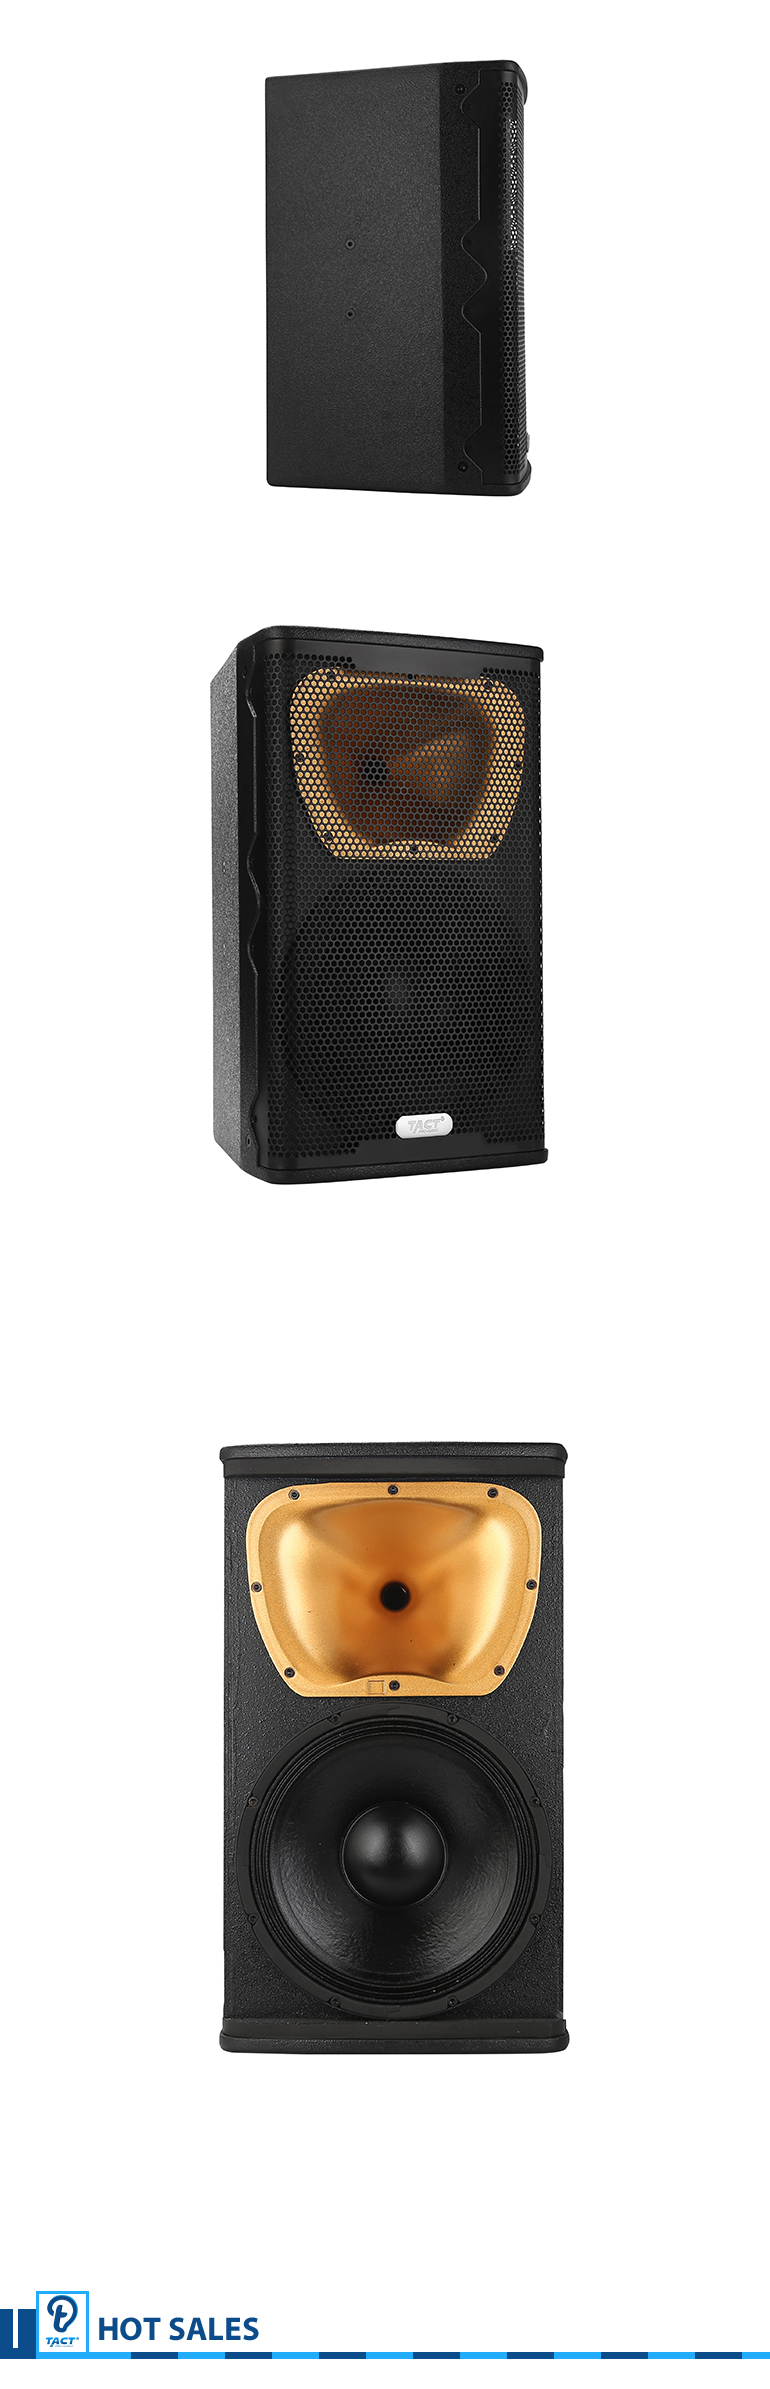 Enping 12 inch audio pa speakers design